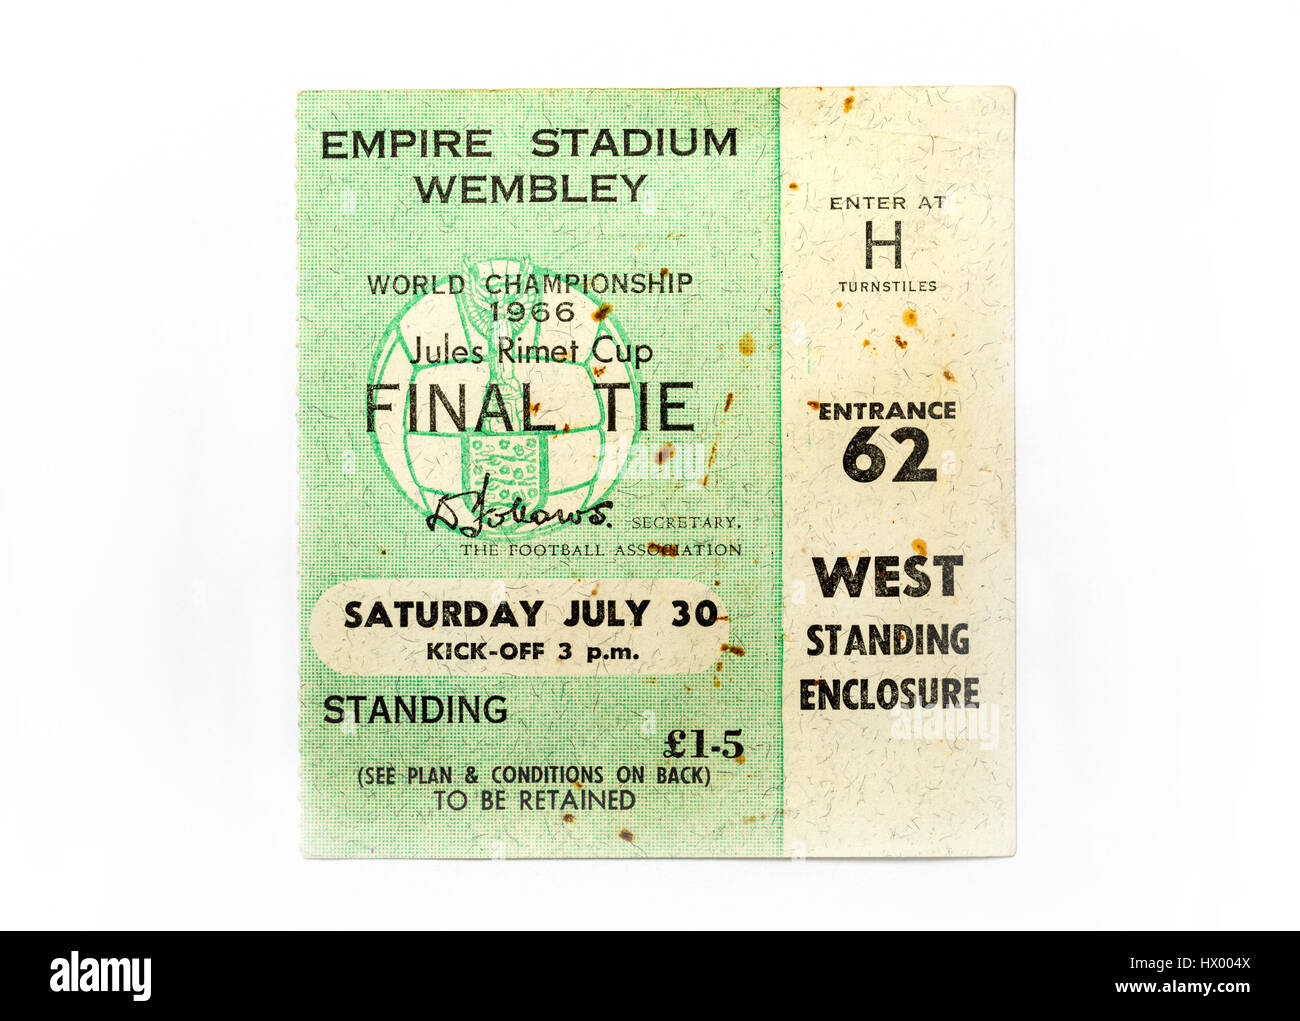 A ticket from the 1966 World Cup Final where England beat West Germany 4-2 - Stock Image